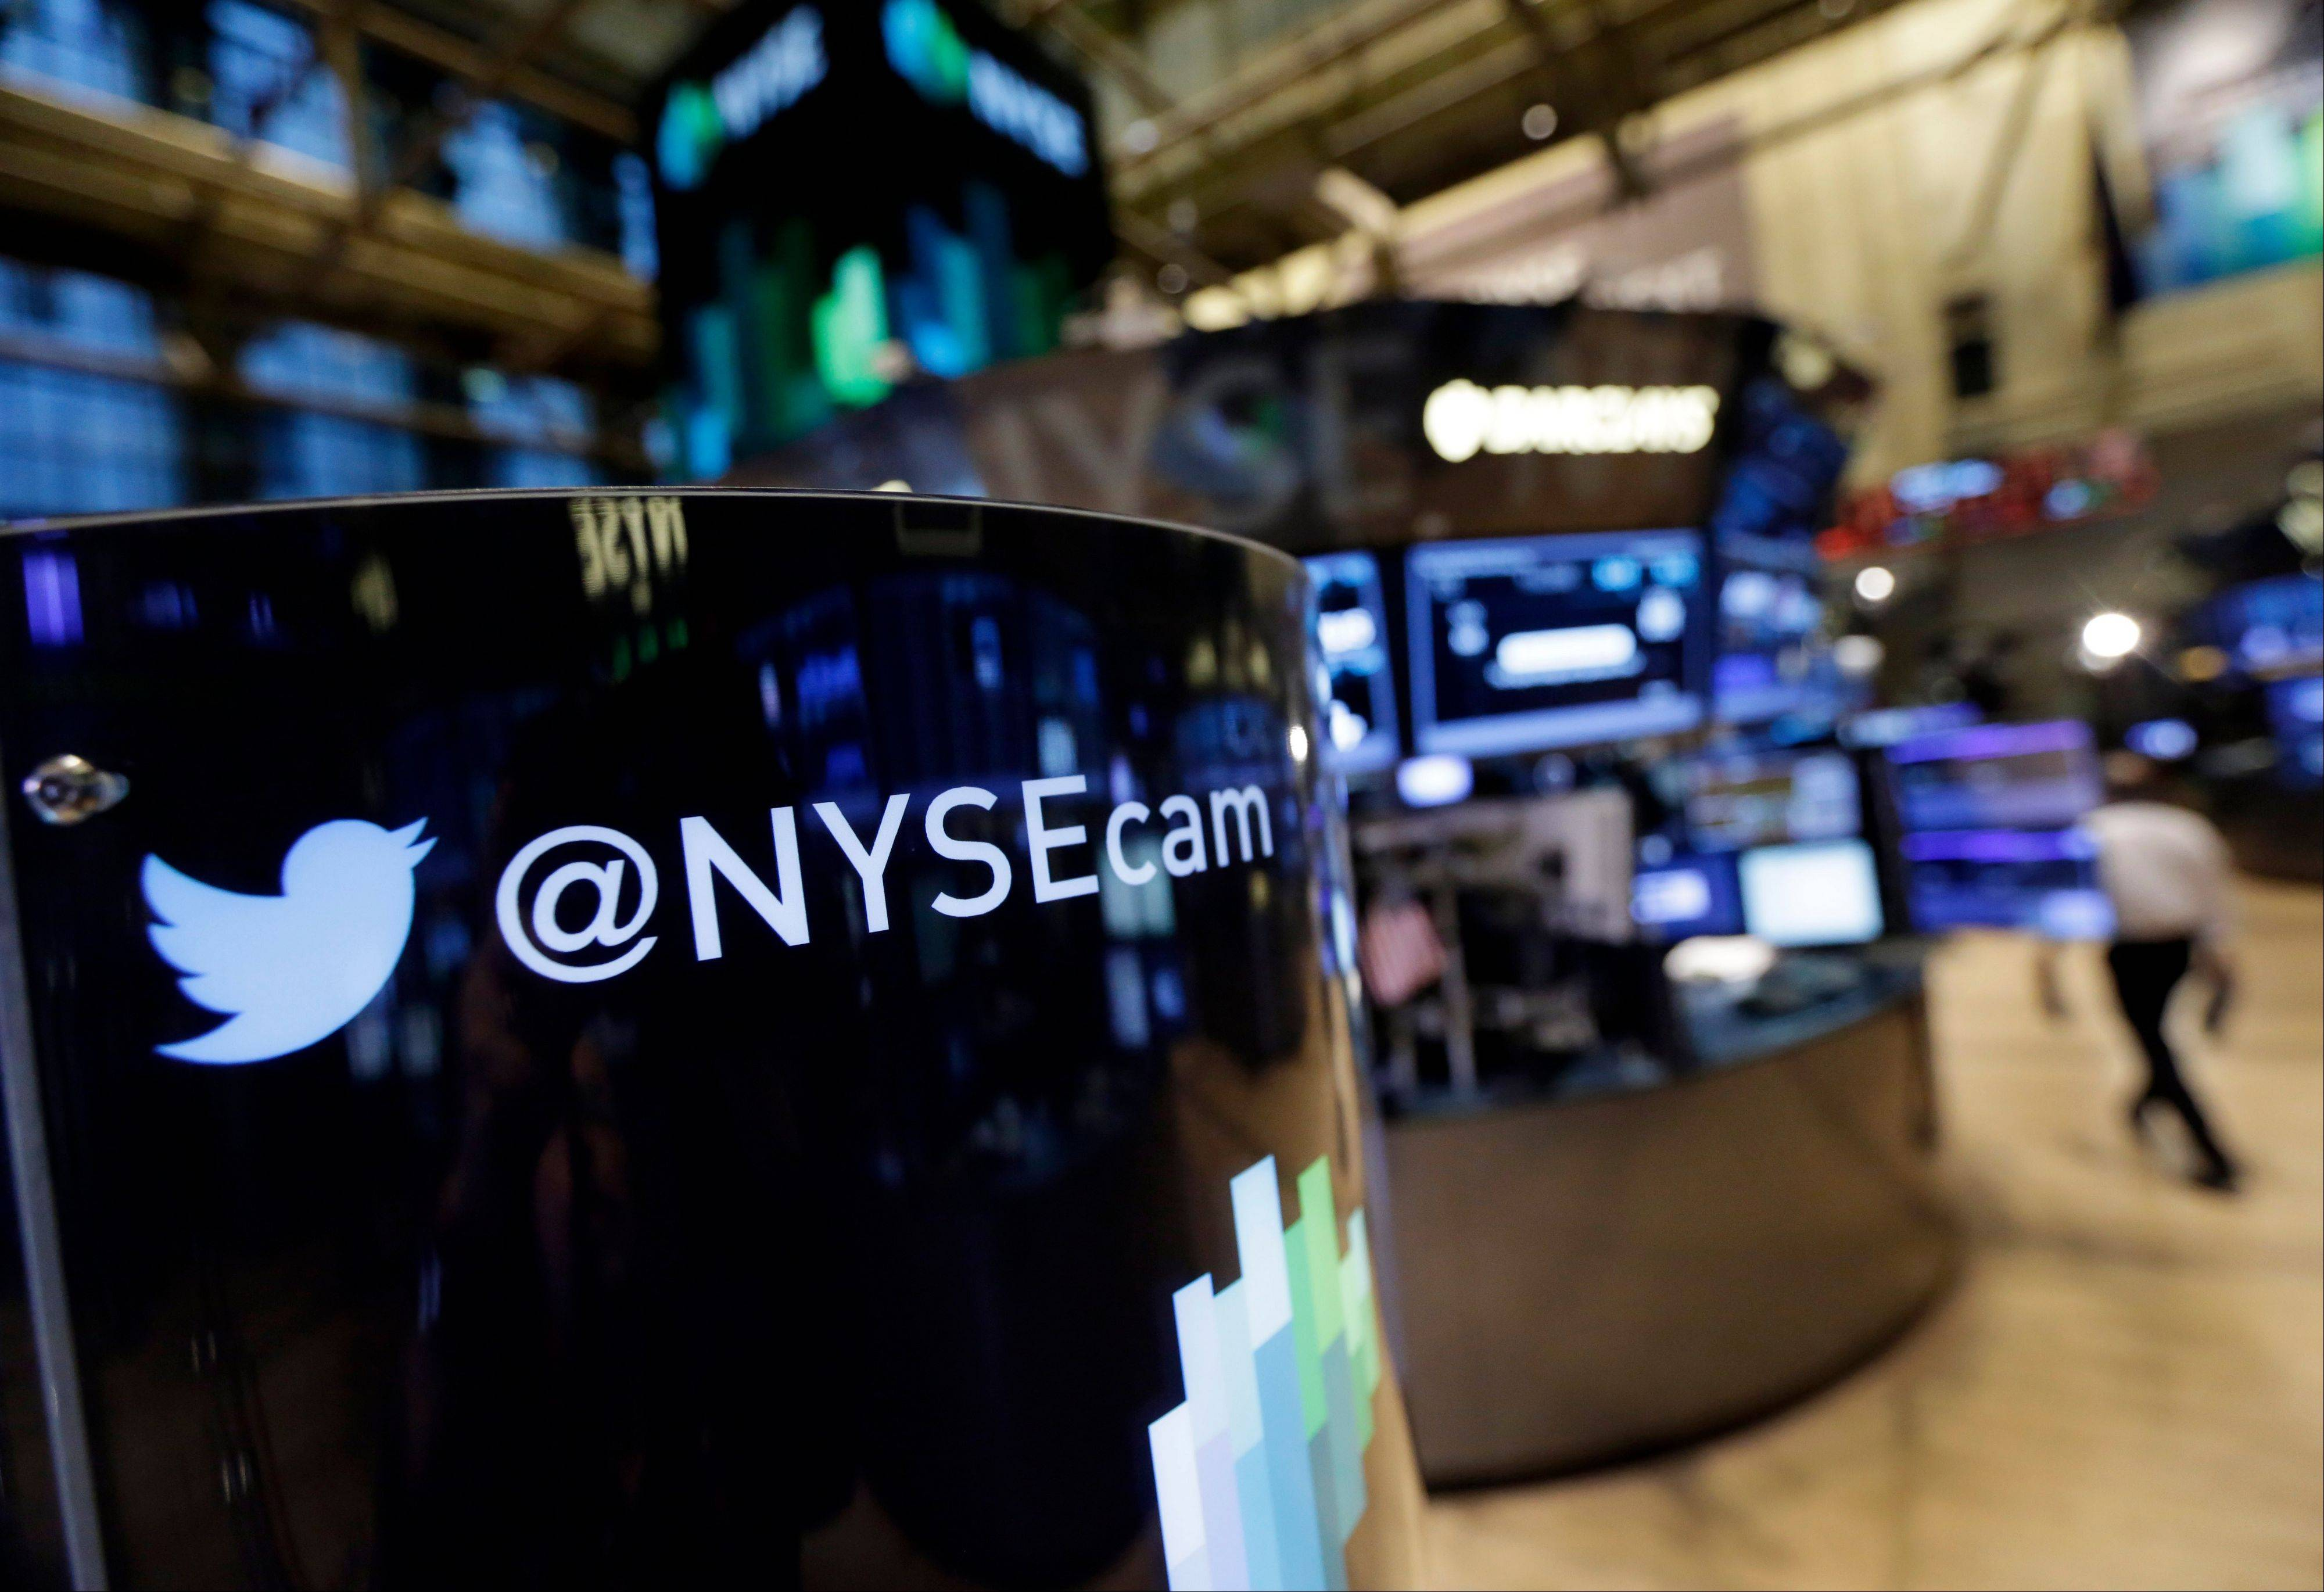 Associated PressA phone post on the floor of the New York Stock Exchange features a Twitter logo. Twitter Inc., the microblogging service that amassed more than 200 million users in seven years, is now struggling to widen its audience as quickly. The shares tumbled in U.S. trading.